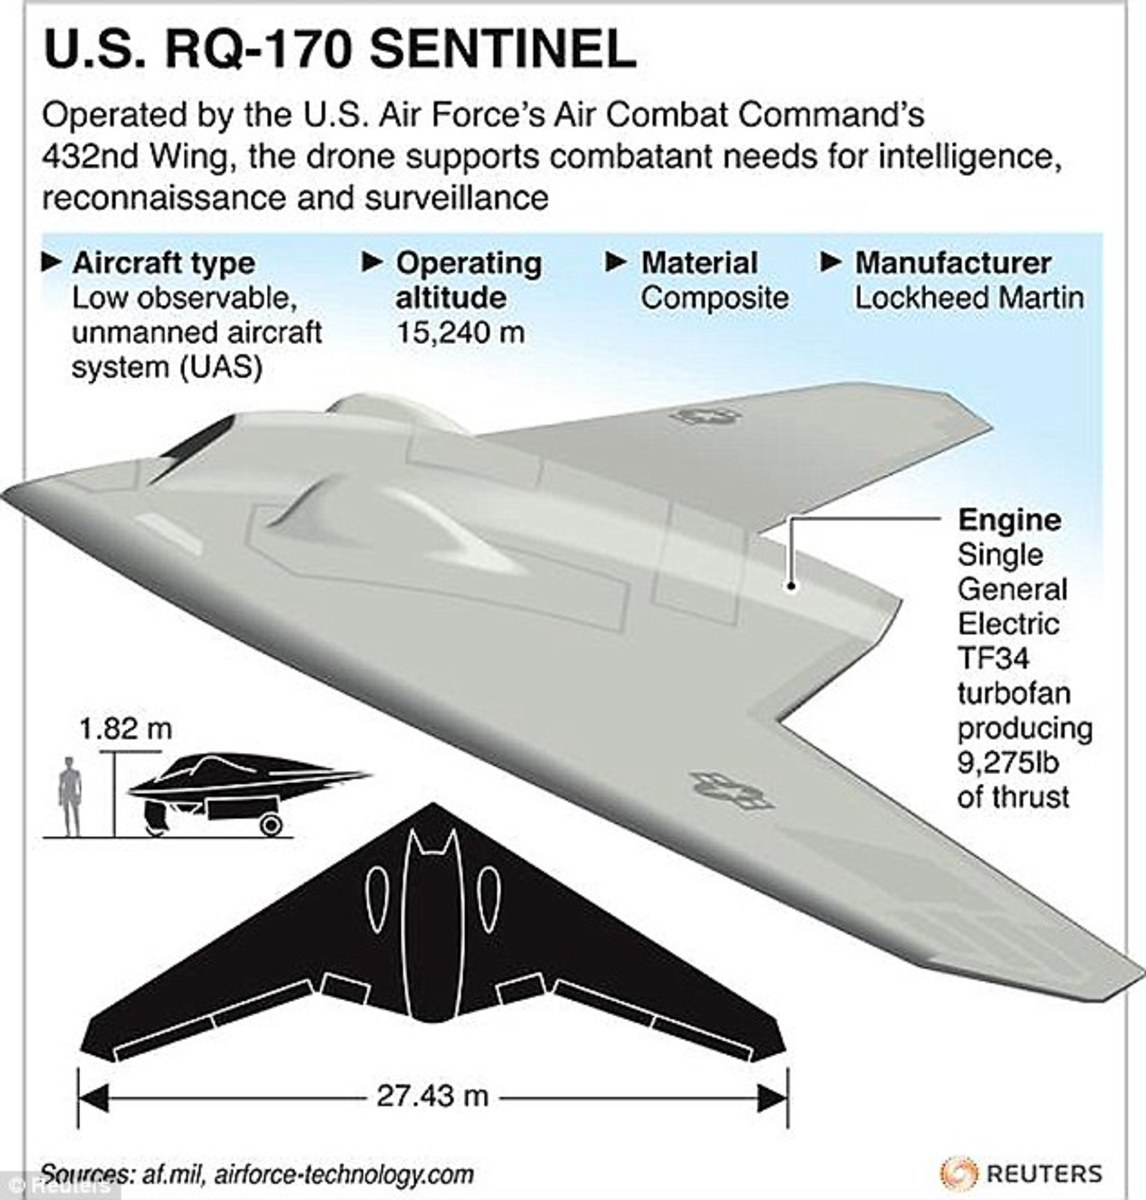 The RQ-170 drone used over Afghanistan today.